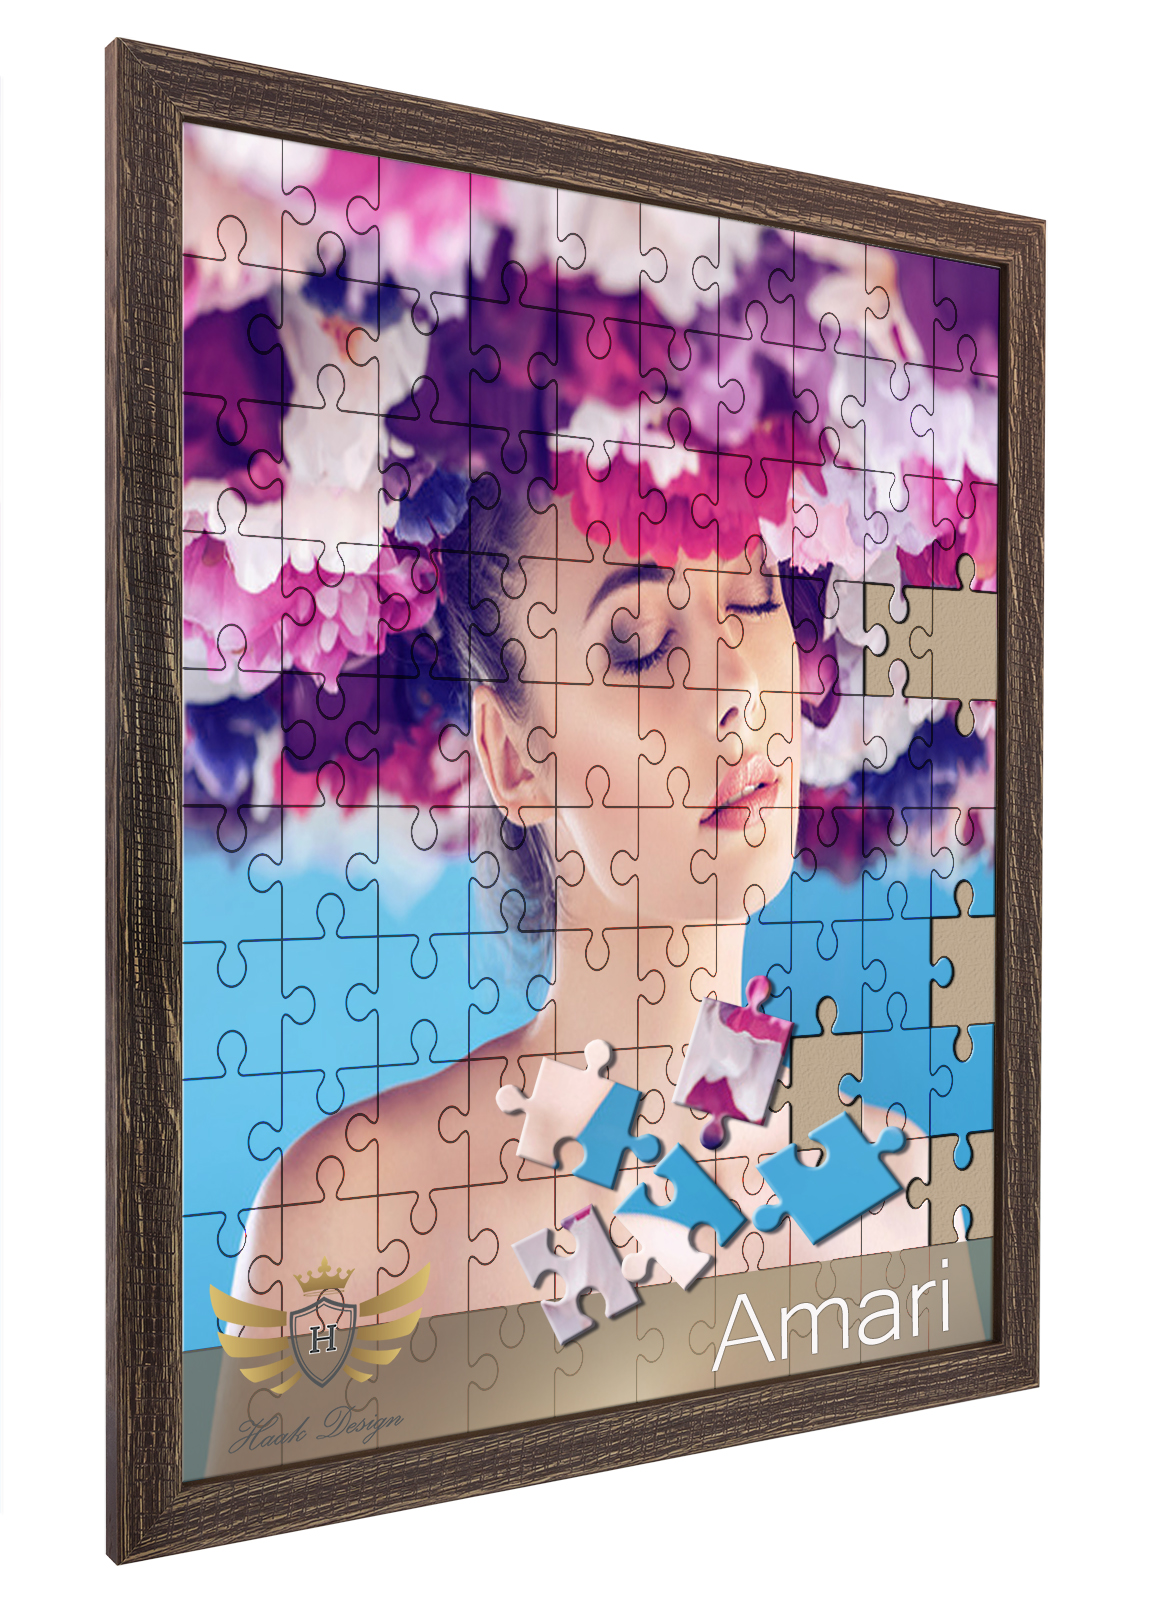 puzzlerahmen amari 6 farben viele gr en bilderrahmen f r puzzle holz g nstig ebay. Black Bedroom Furniture Sets. Home Design Ideas